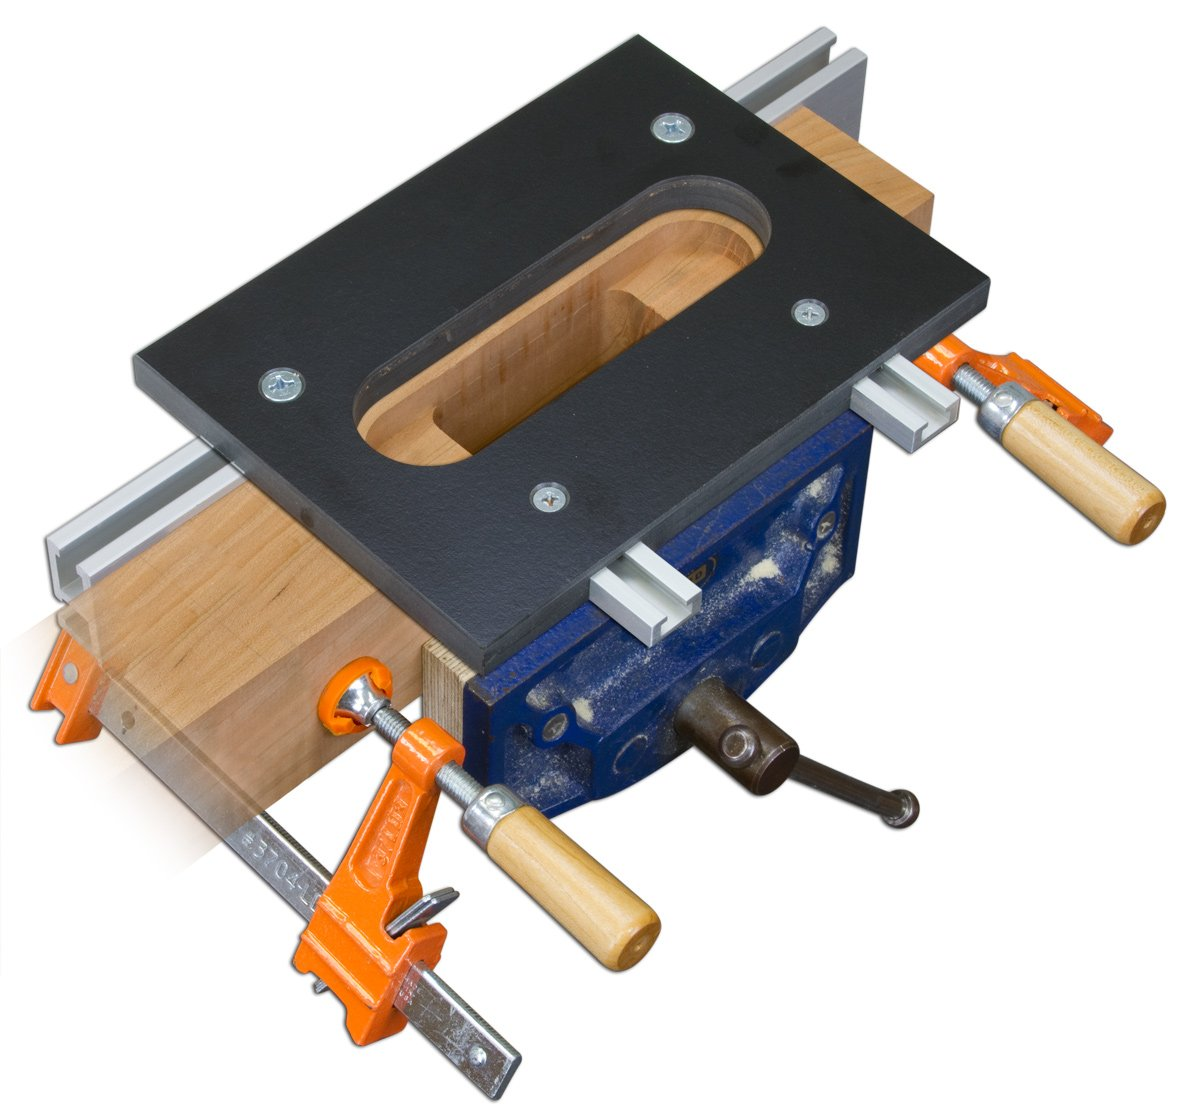 Woodhaven 8668 for SOSS 218 Hinge - Router Templates - Amazon.com